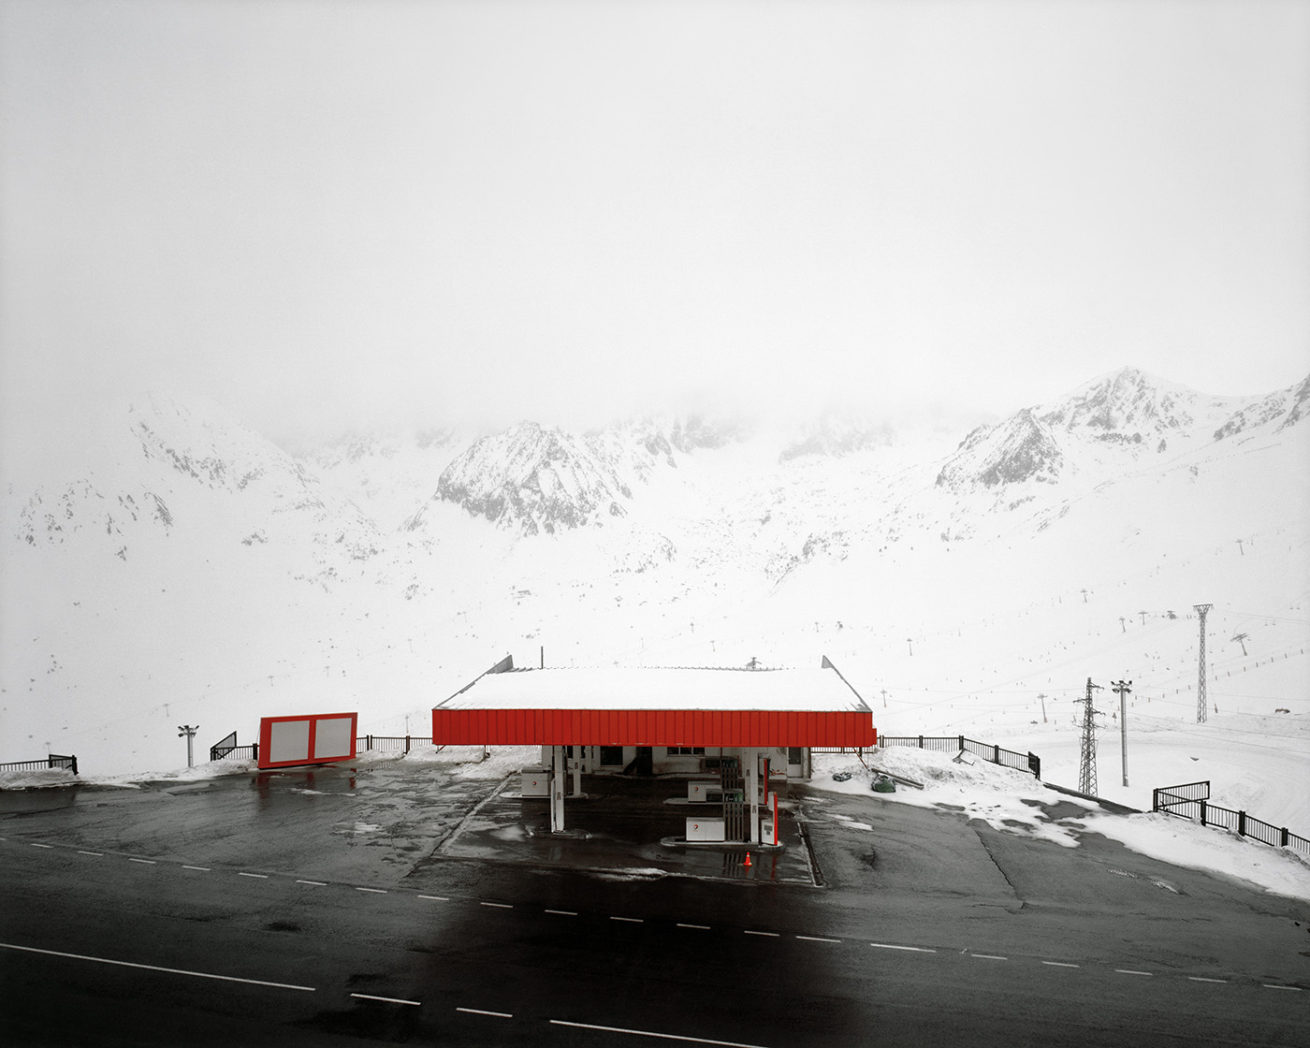 Richard Petit - Cheap Land - Untitled - 06_37